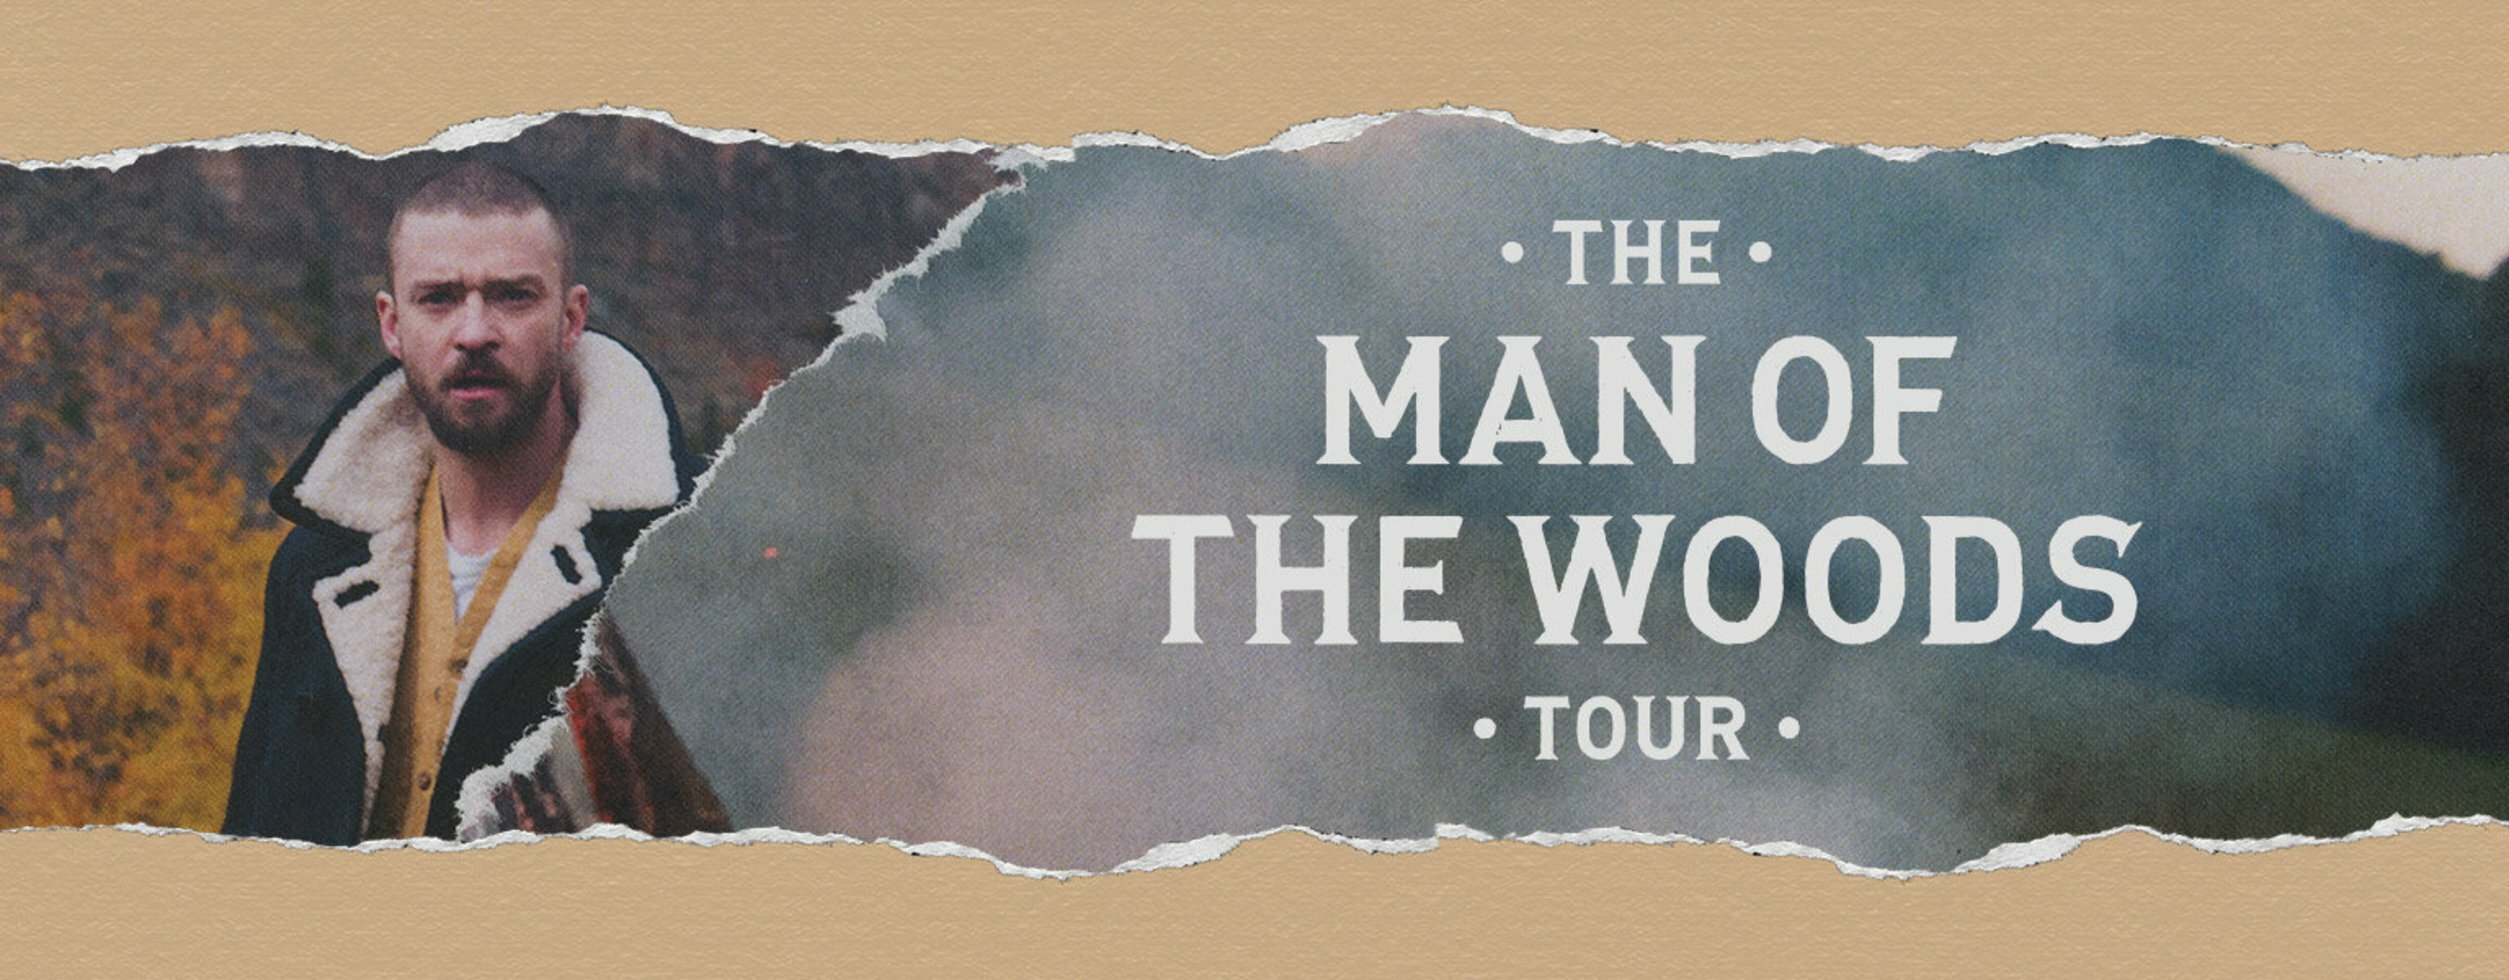 Justin Timberlake 'Man of the Woods' Tour